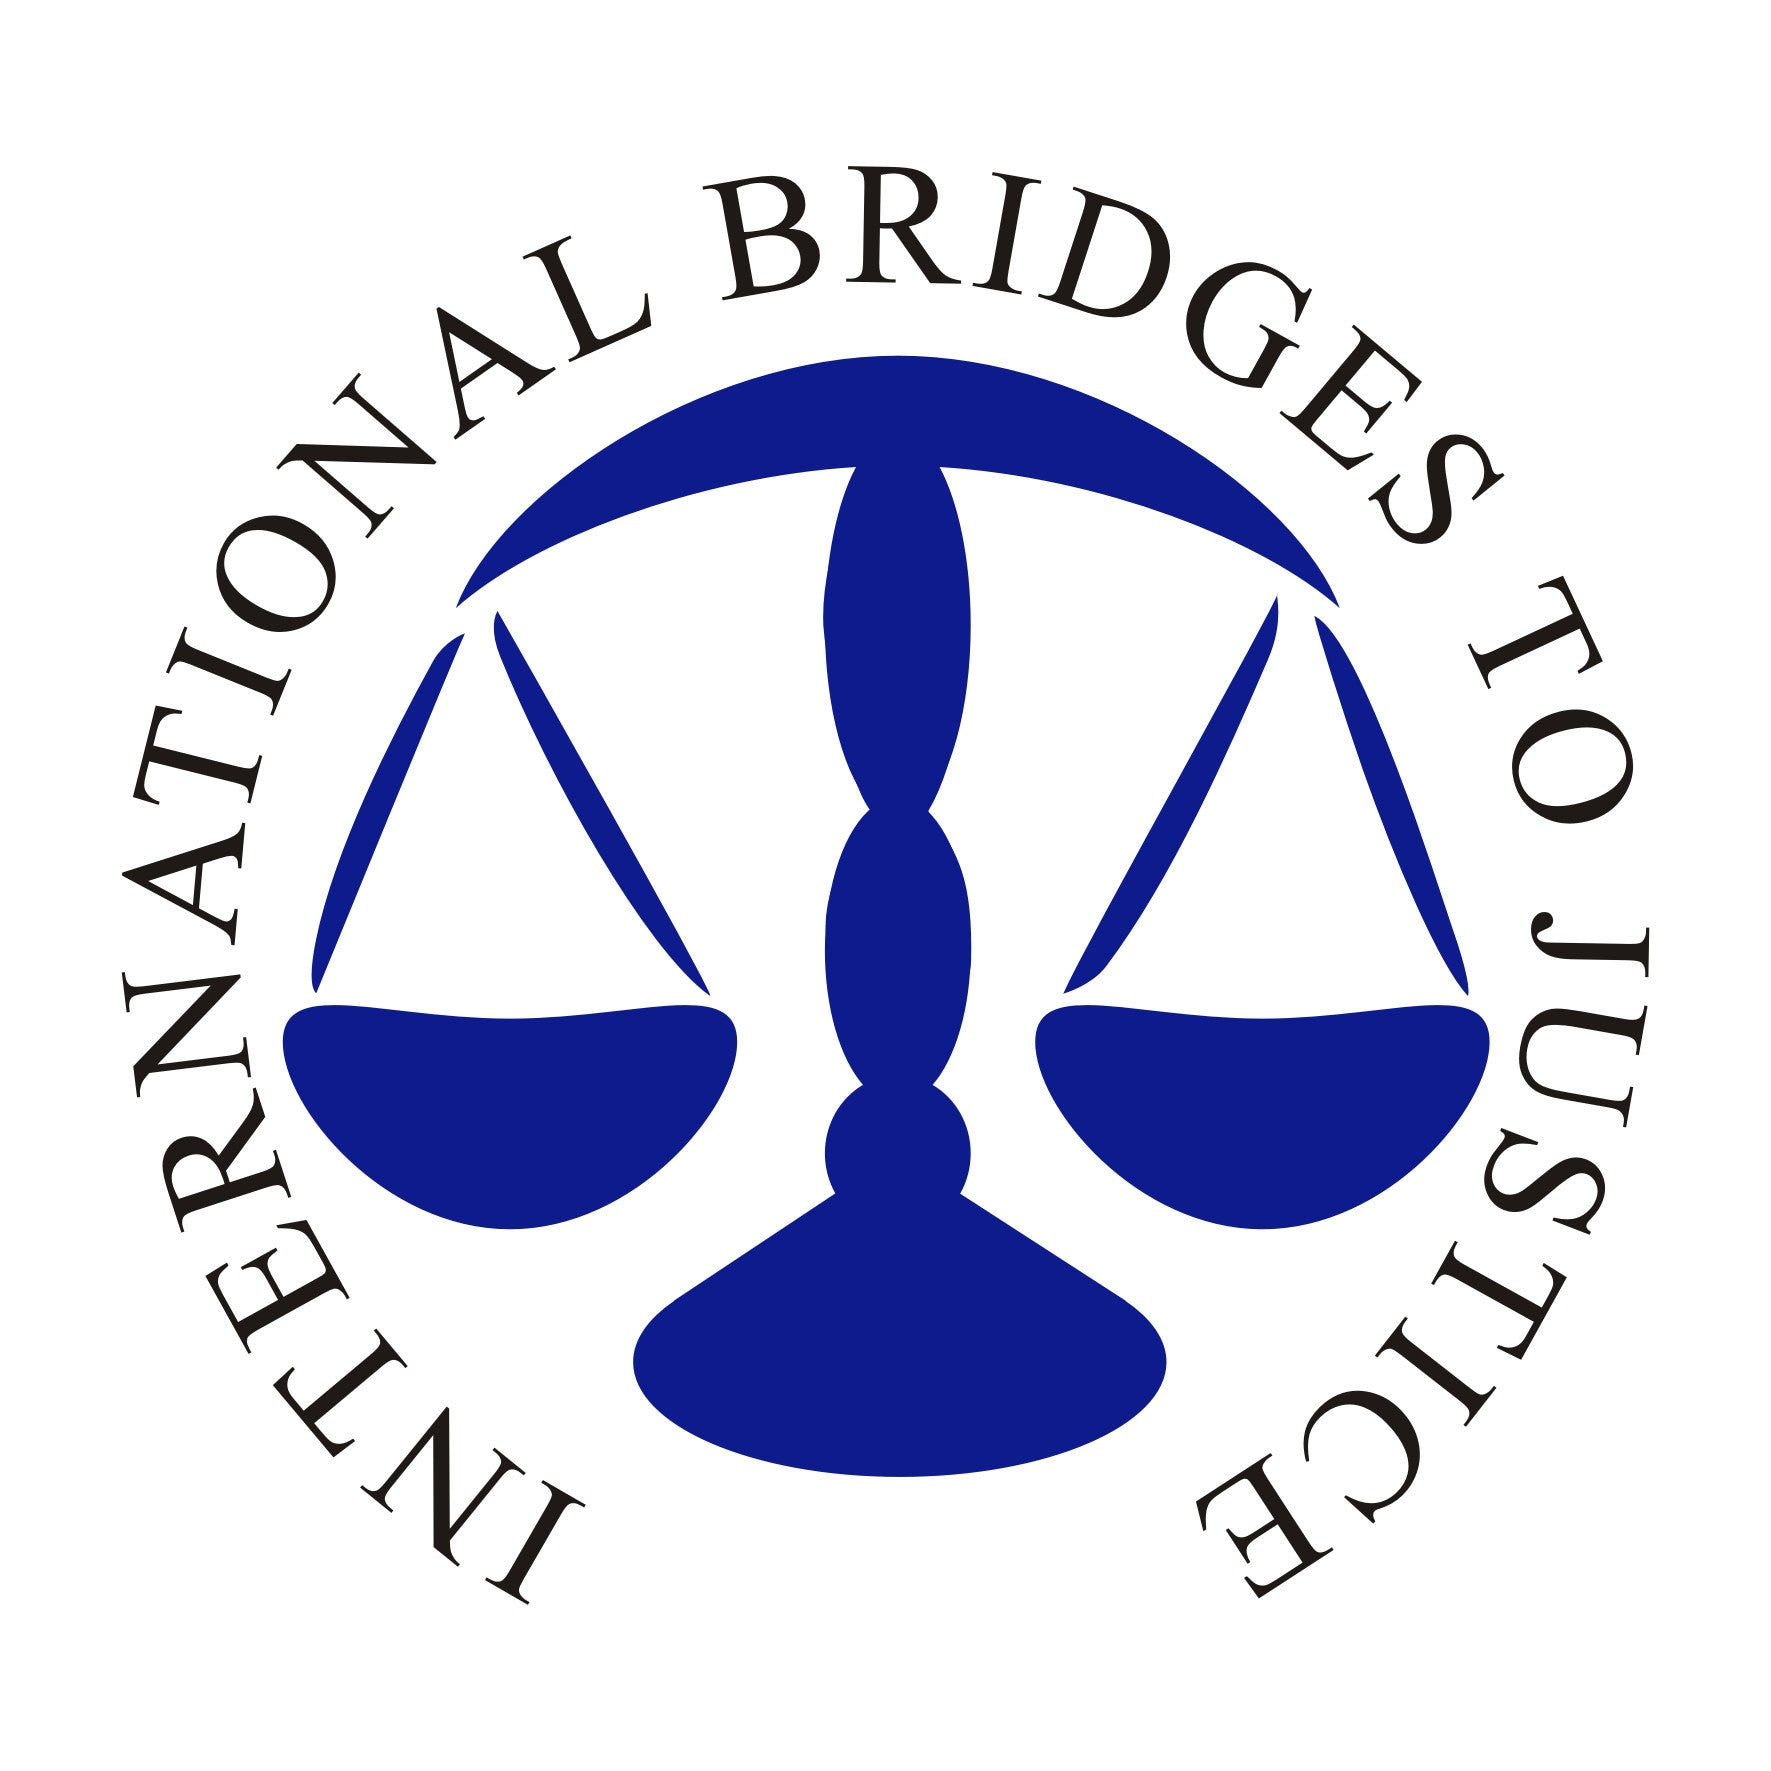 International Bridges to Justice logo